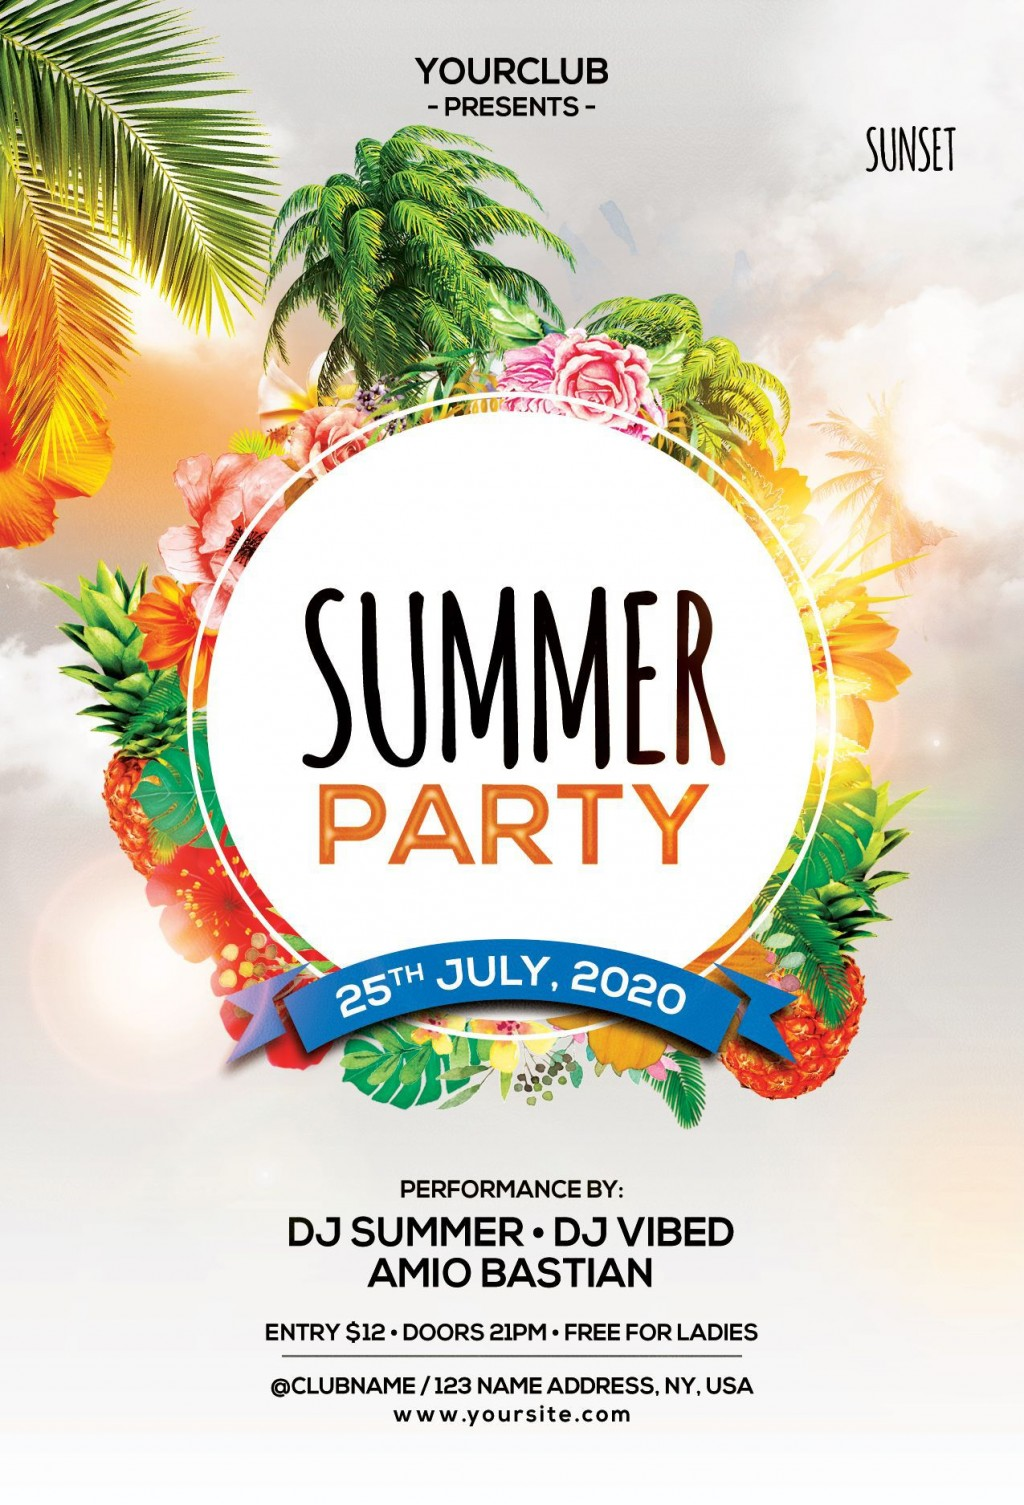 000 Best Pool Party Flyer Template Free High Definition  Photoshop PsdLarge